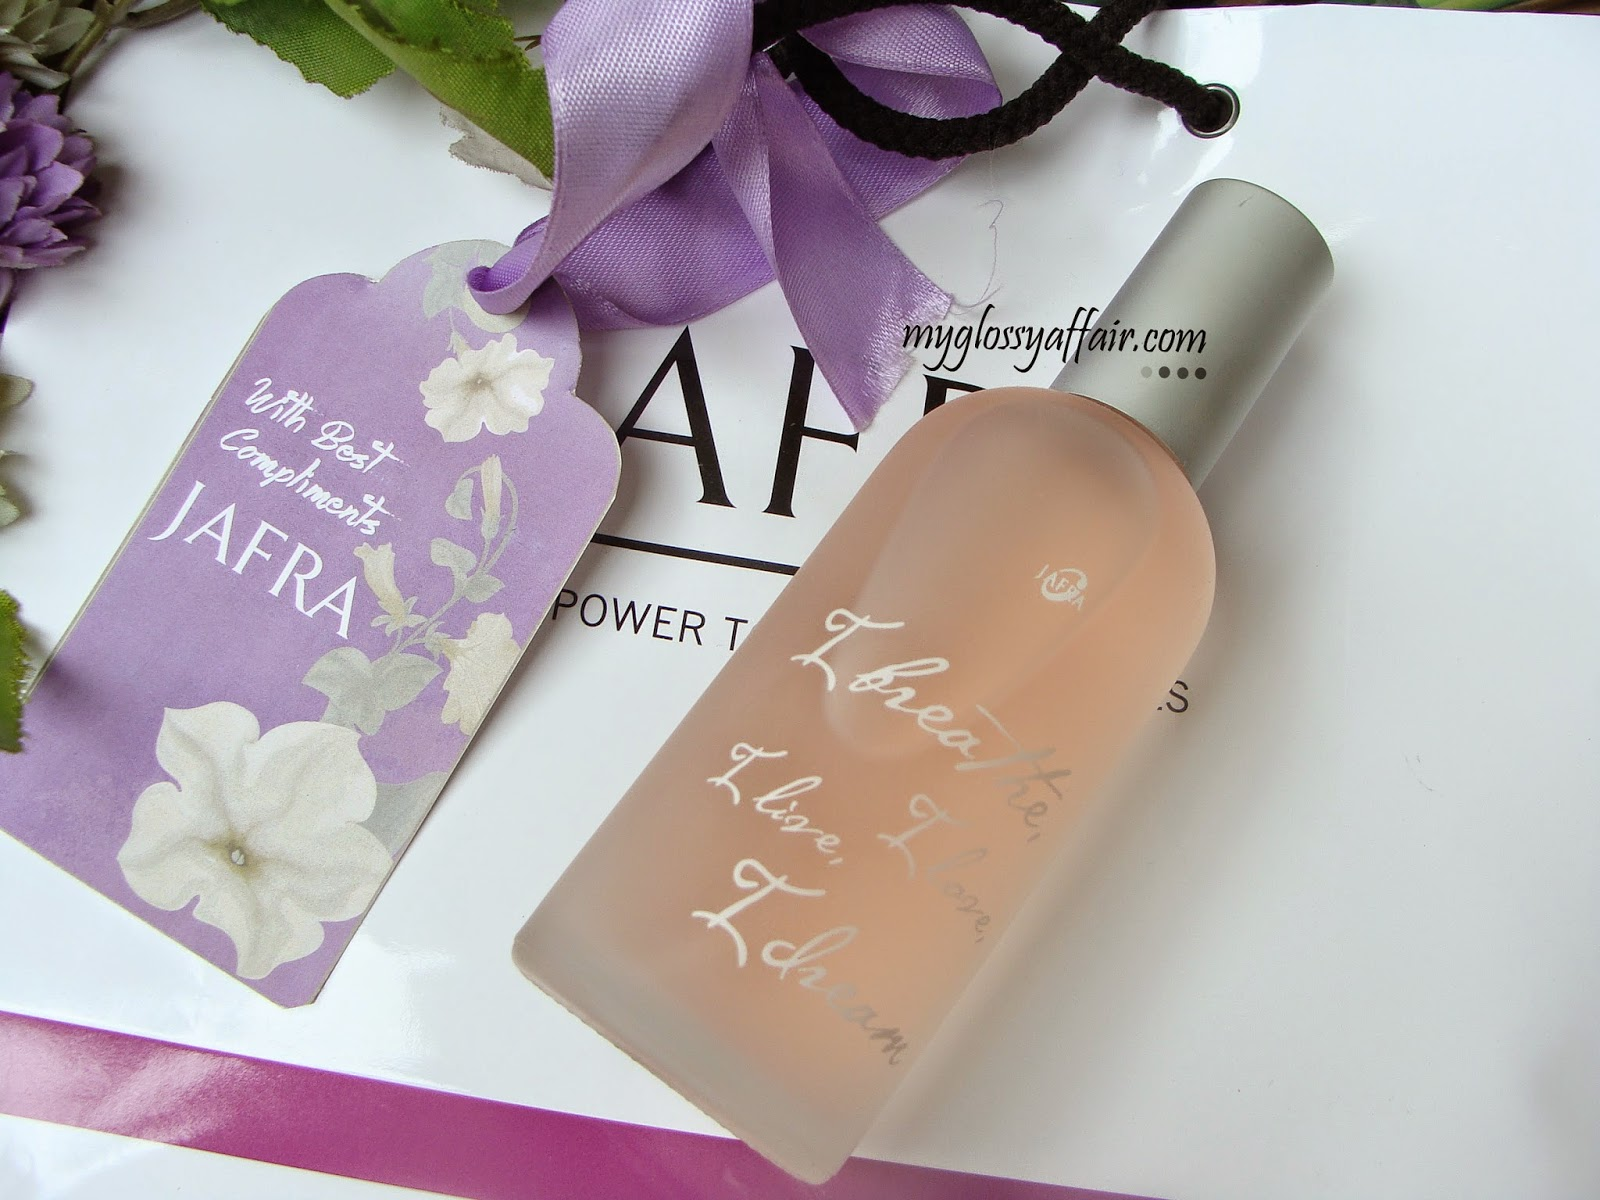 Best Perfumes My Glossy Affair Jafra Nourishing Hand Ampamp Nail Lotion Fragrance I Breathe Love Live Dream Review